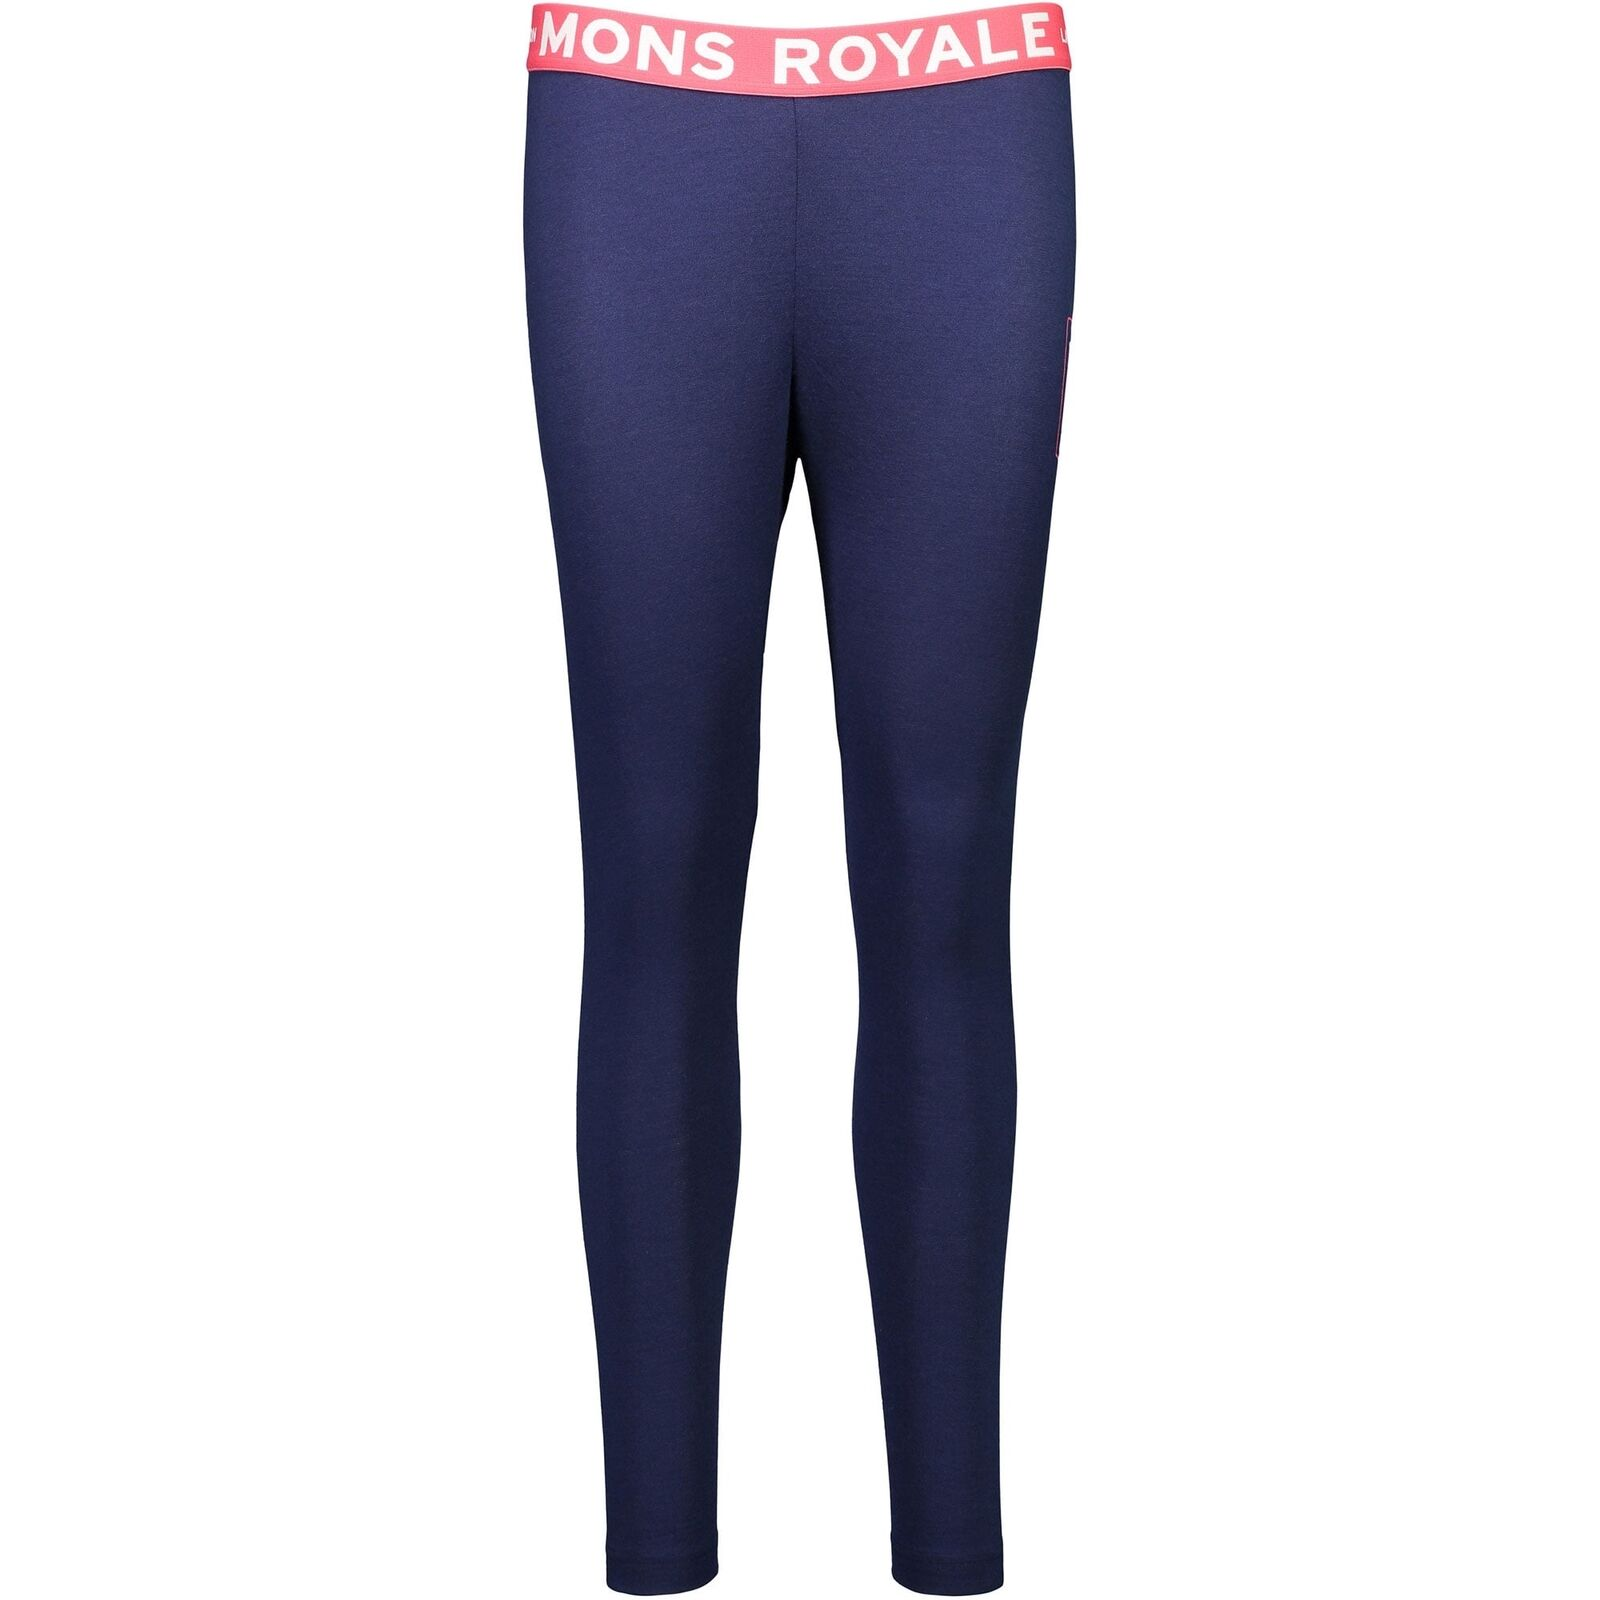 Mons Royale Christy Women's  FOLO Leggings - Navy  fishional store for sale